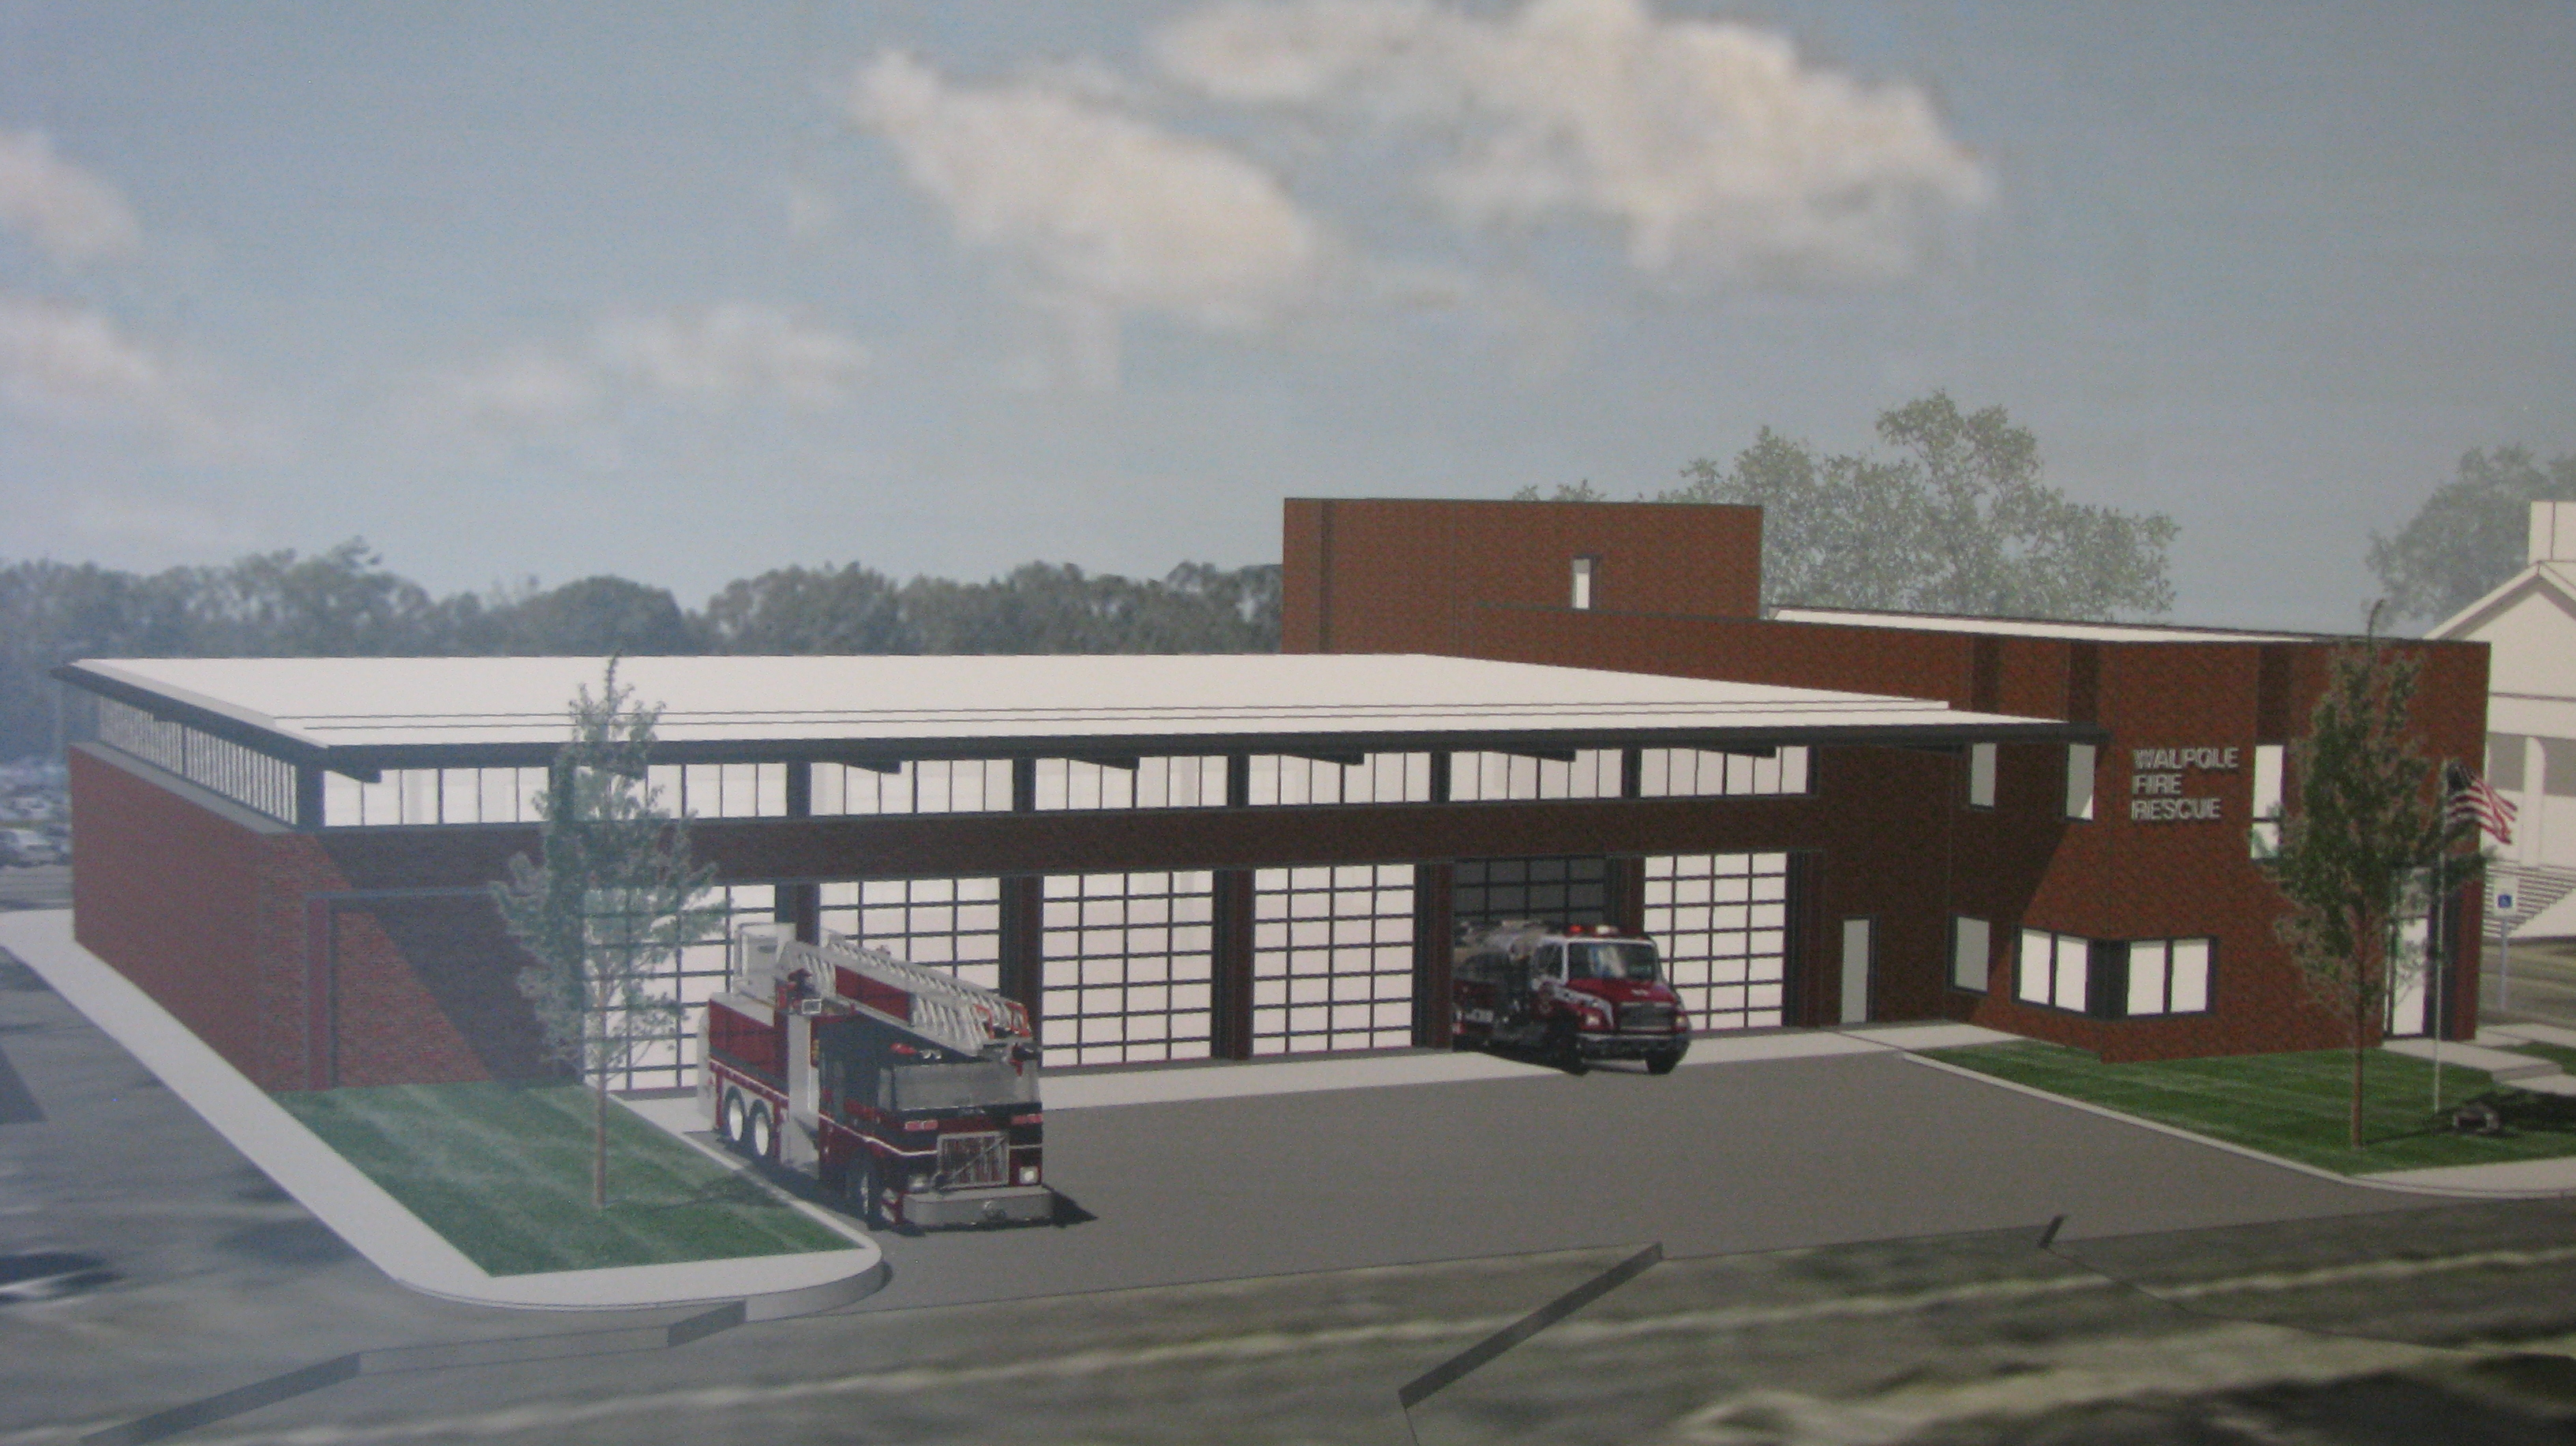 Walpole fire department home many thanks to the permanant building committe the citizens of walpole and the hard working site contractors for the work and support stop by for a visit publicscrutiny Image collections